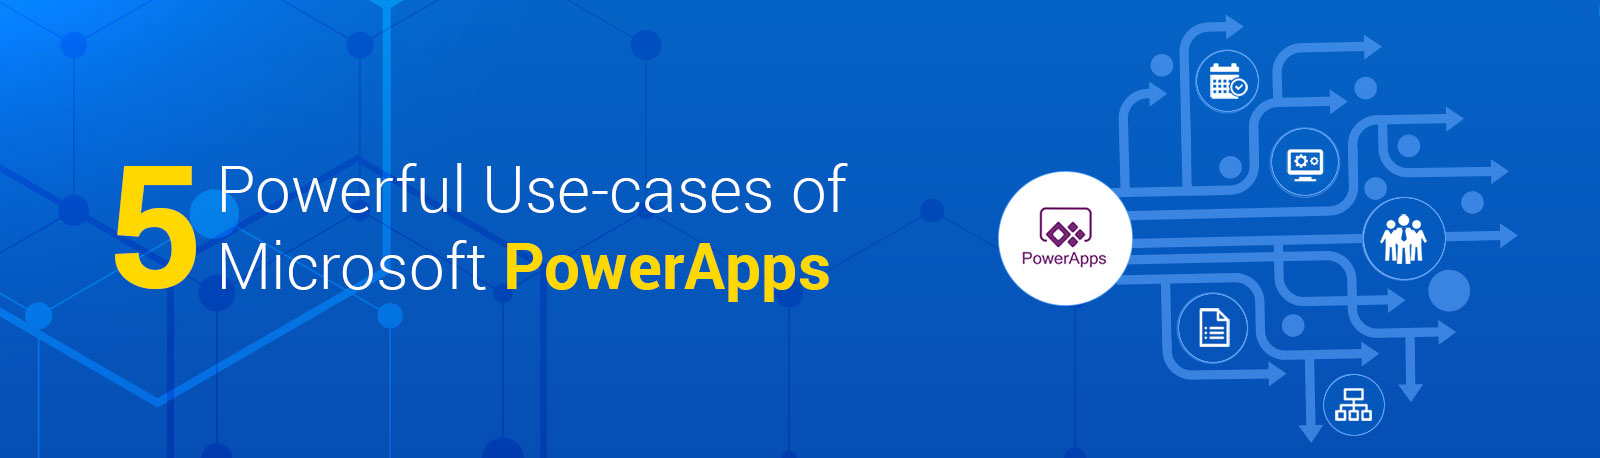 5 Powerful Use-cases of Microsoft PowerApps